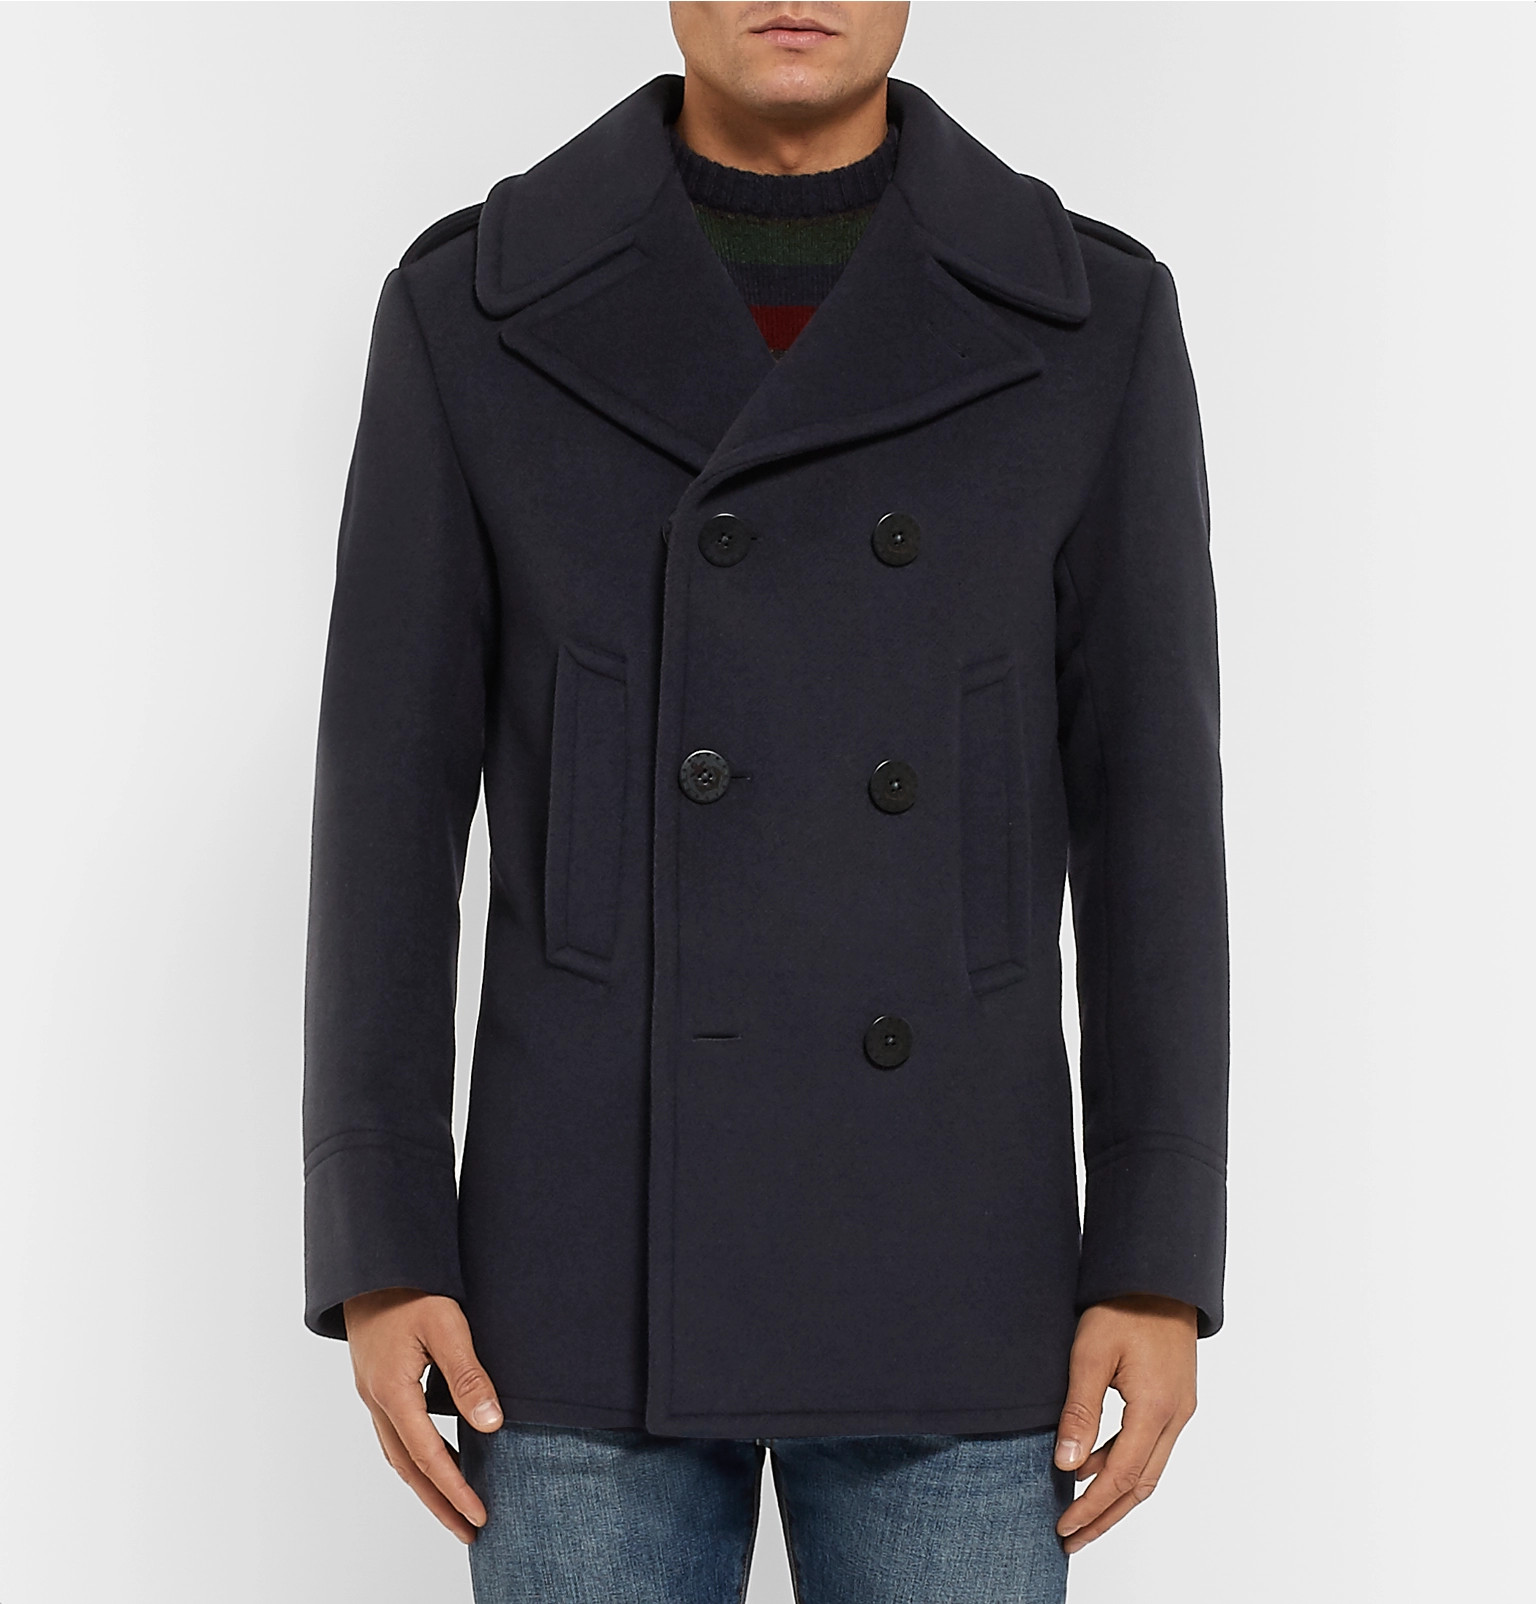 Felt Polo Wool Peacoat Double Lauren Breasted Ralph Blend FwYvFgq